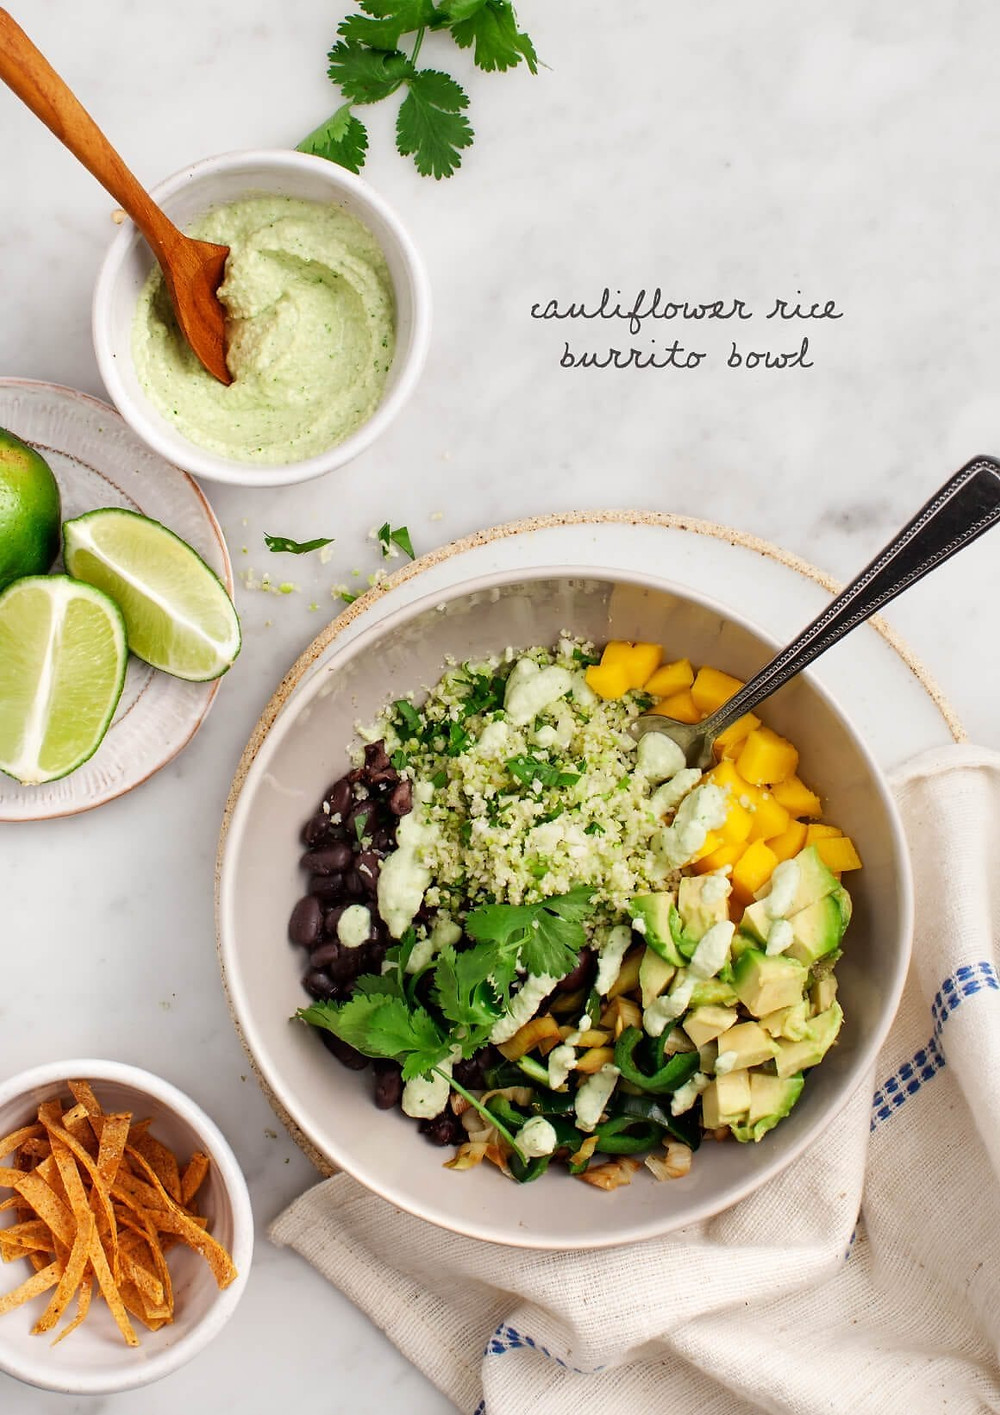 cauliflower rice burrito bowl is full of vegetables and beans making it a satisfying meatless dinner